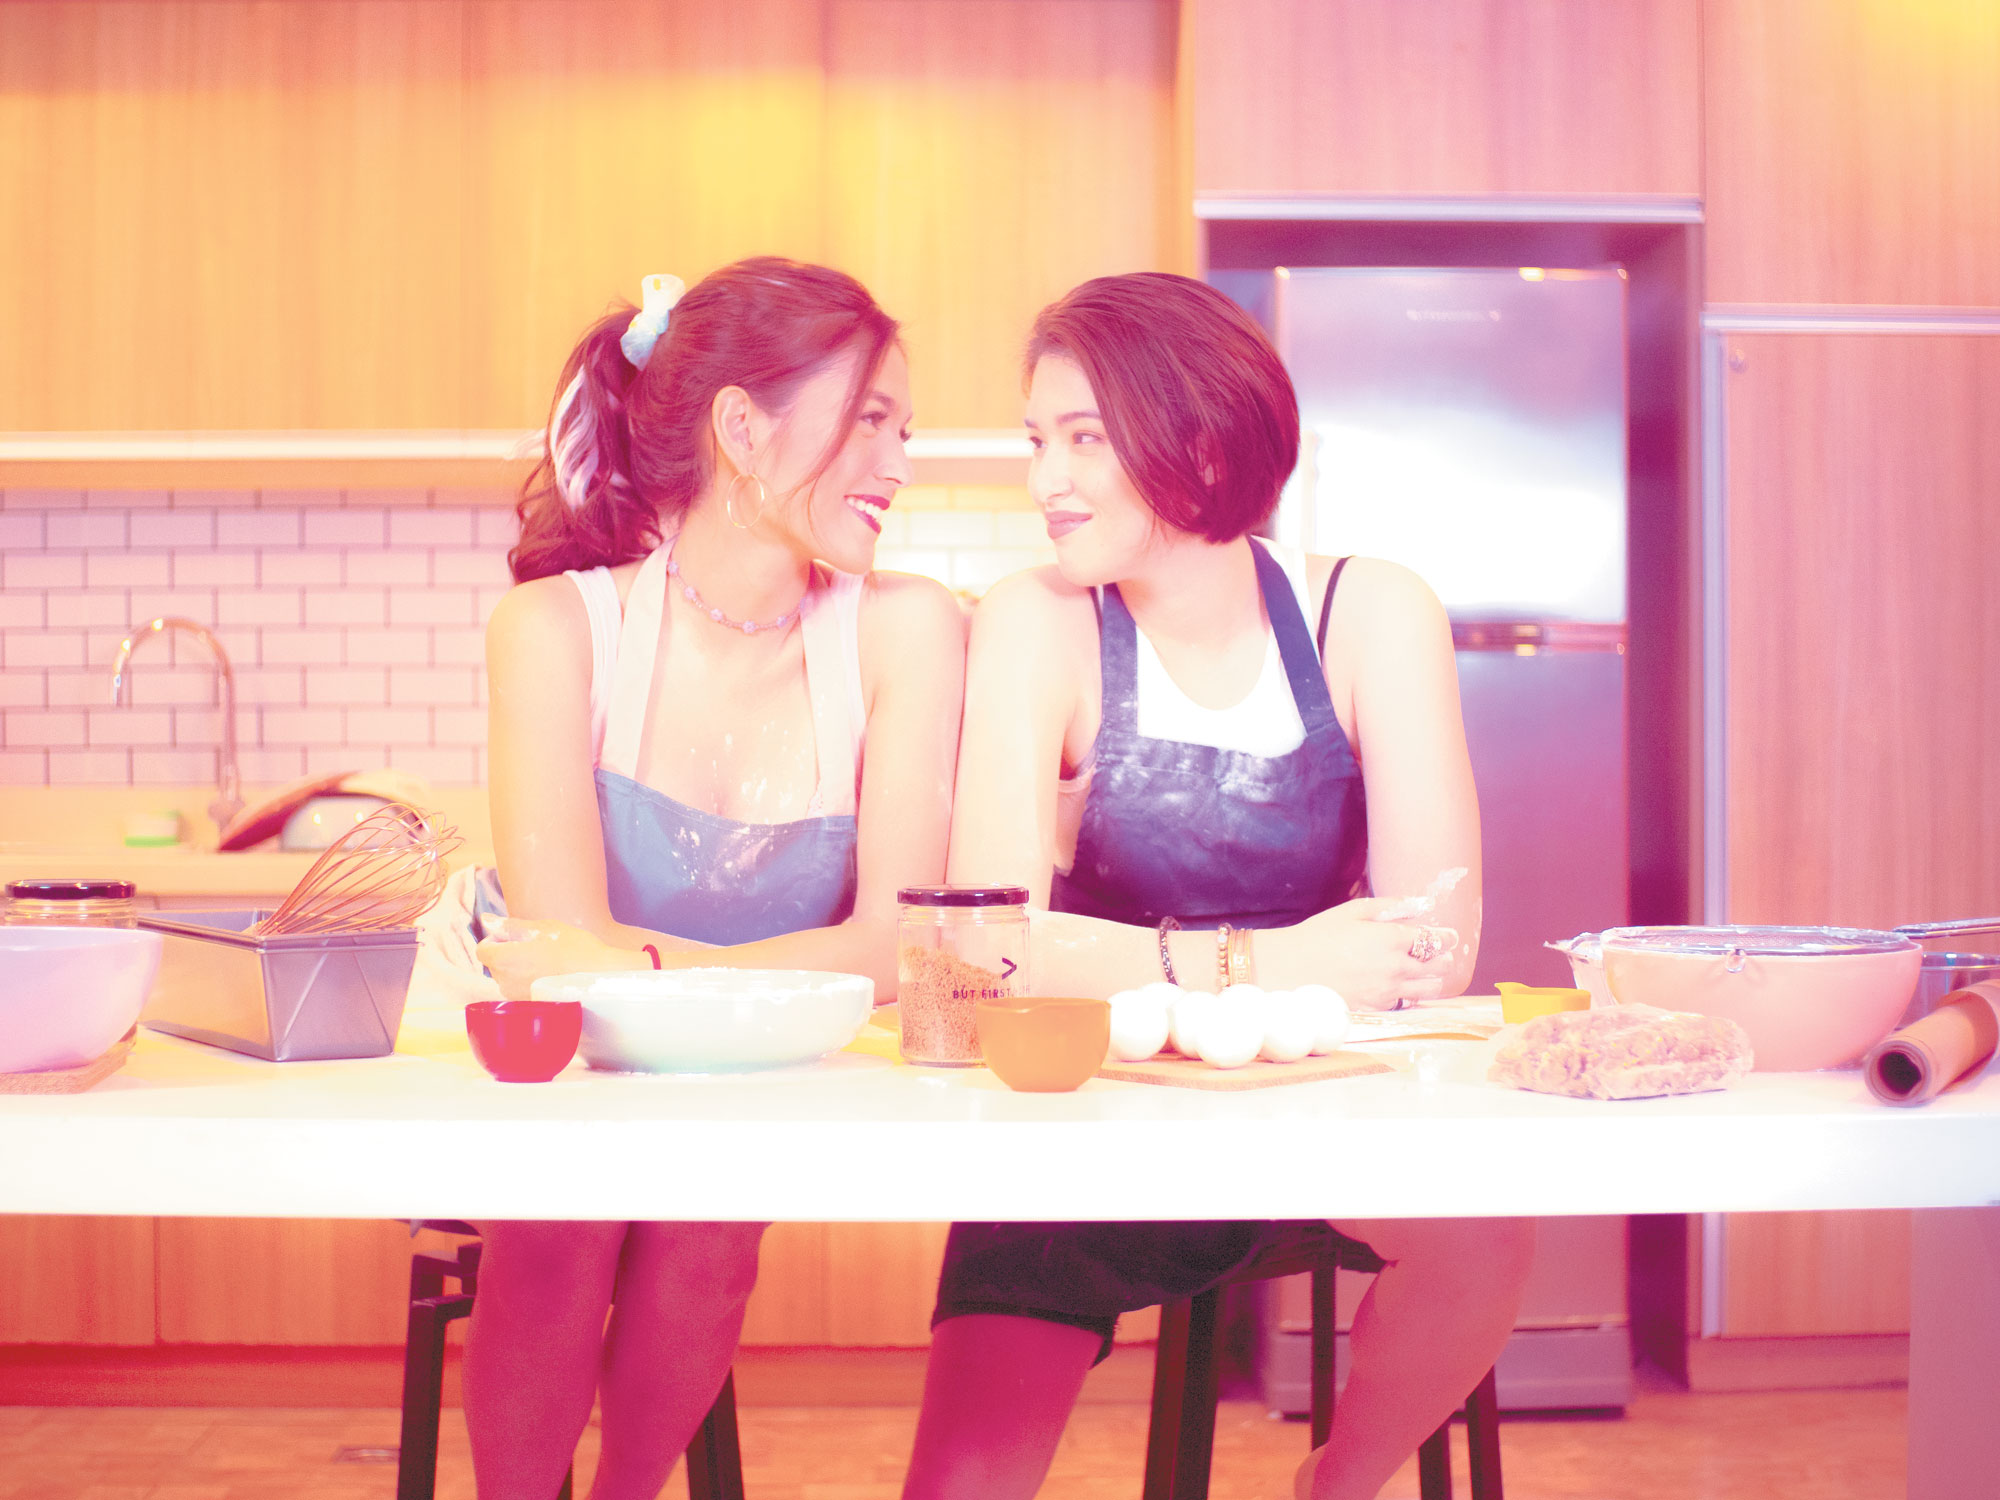 2 girls and social media: New romcom tackles the vicissitudes of romance and online contests